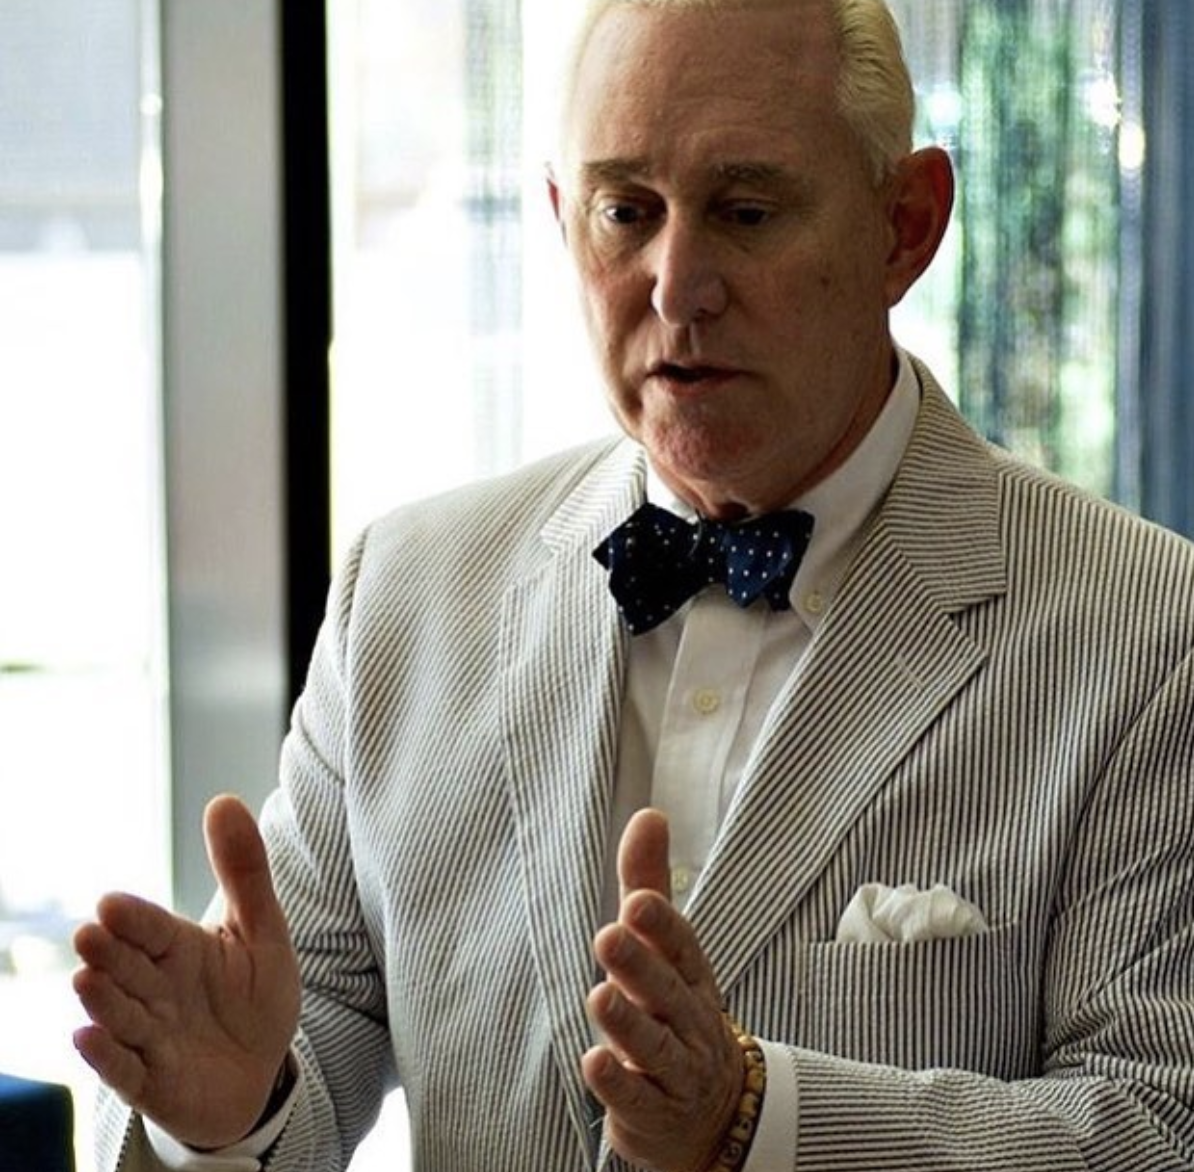 Exclusive: Roger Stone blasts Bannon after his fraud arrest